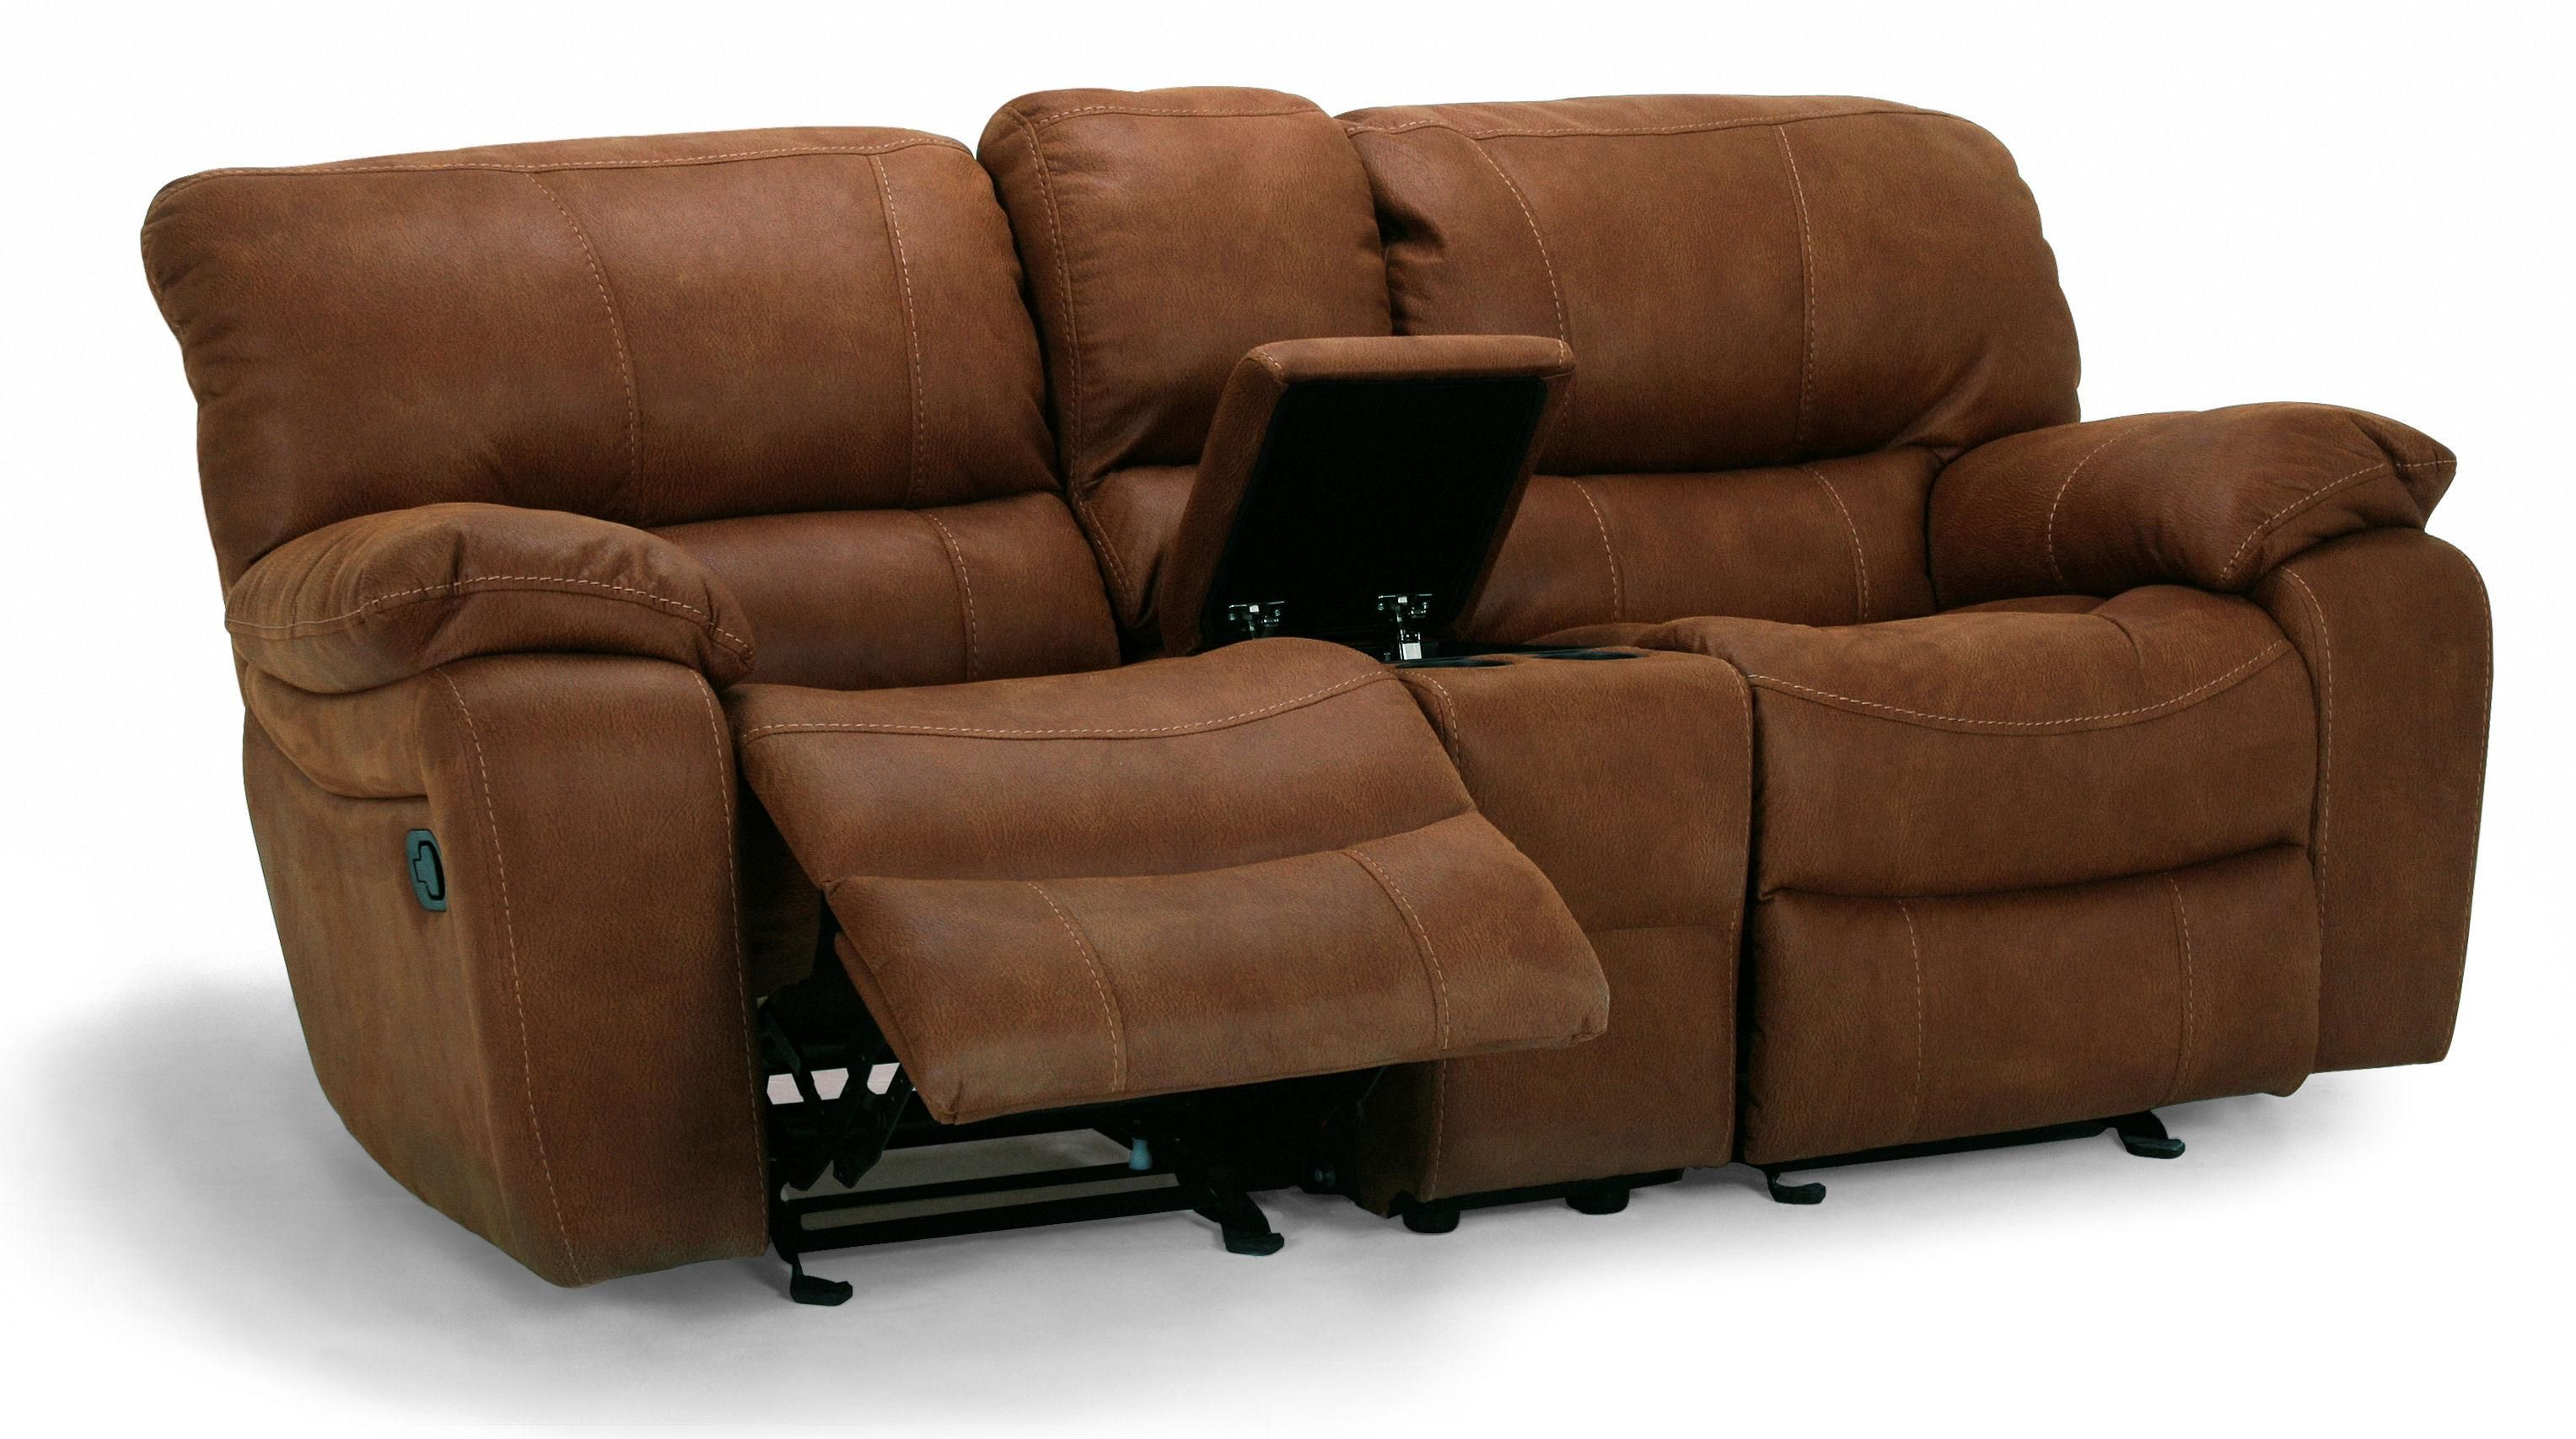 Flexsteel Furniture Latitudes Grandview Collection Featuring Double Reclining Loveseat With